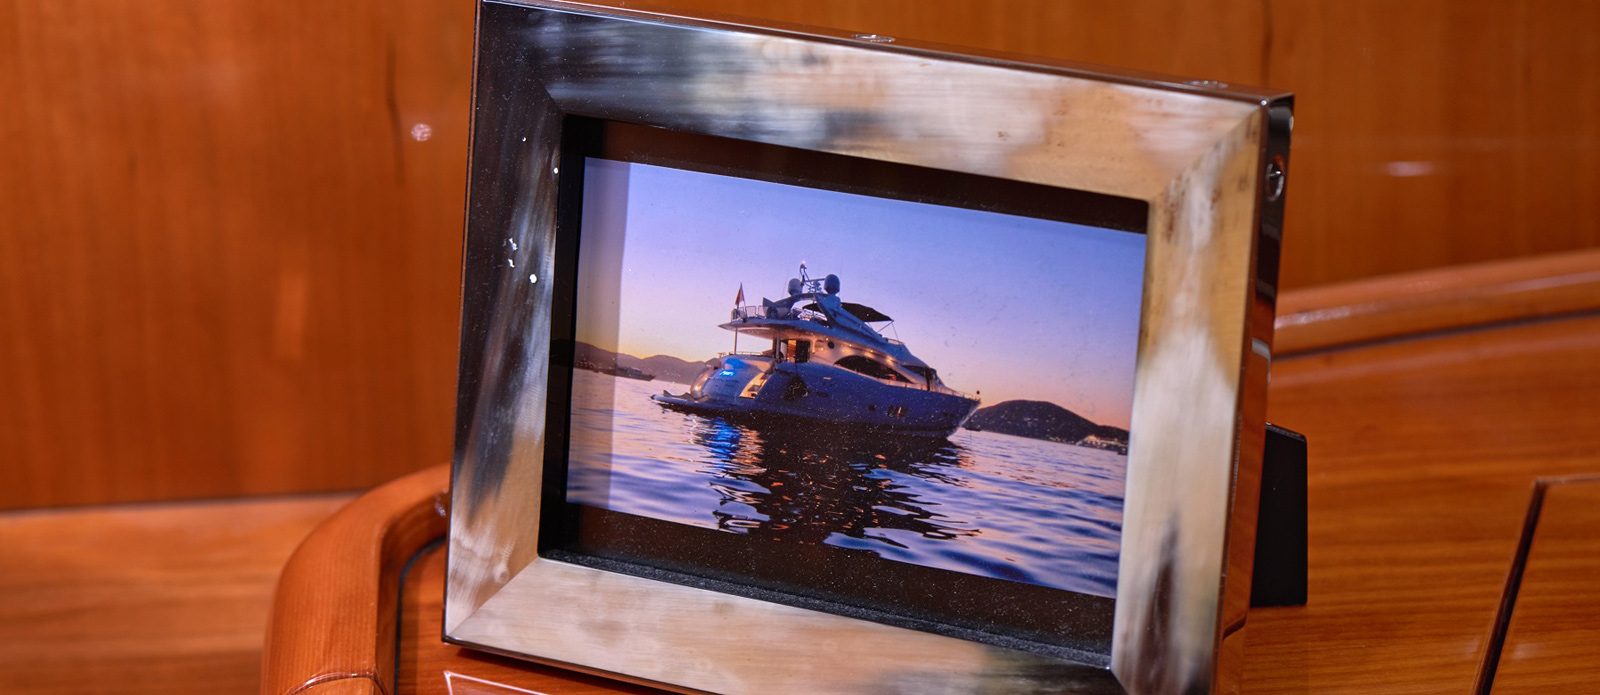 Sunseeker 94 Yacht - Pearl of London - Picture-Frame